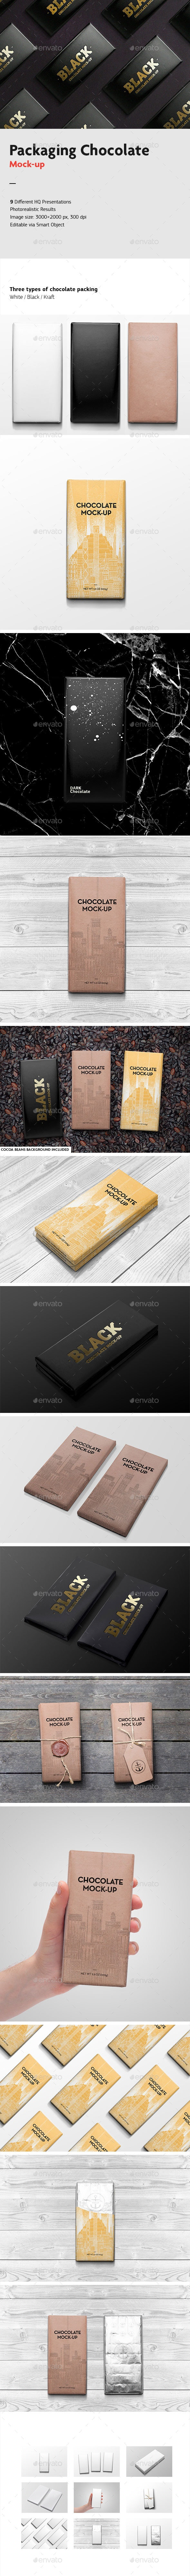 Packaging Chocolate Mock-Up - Packaging Product Mock-Ups